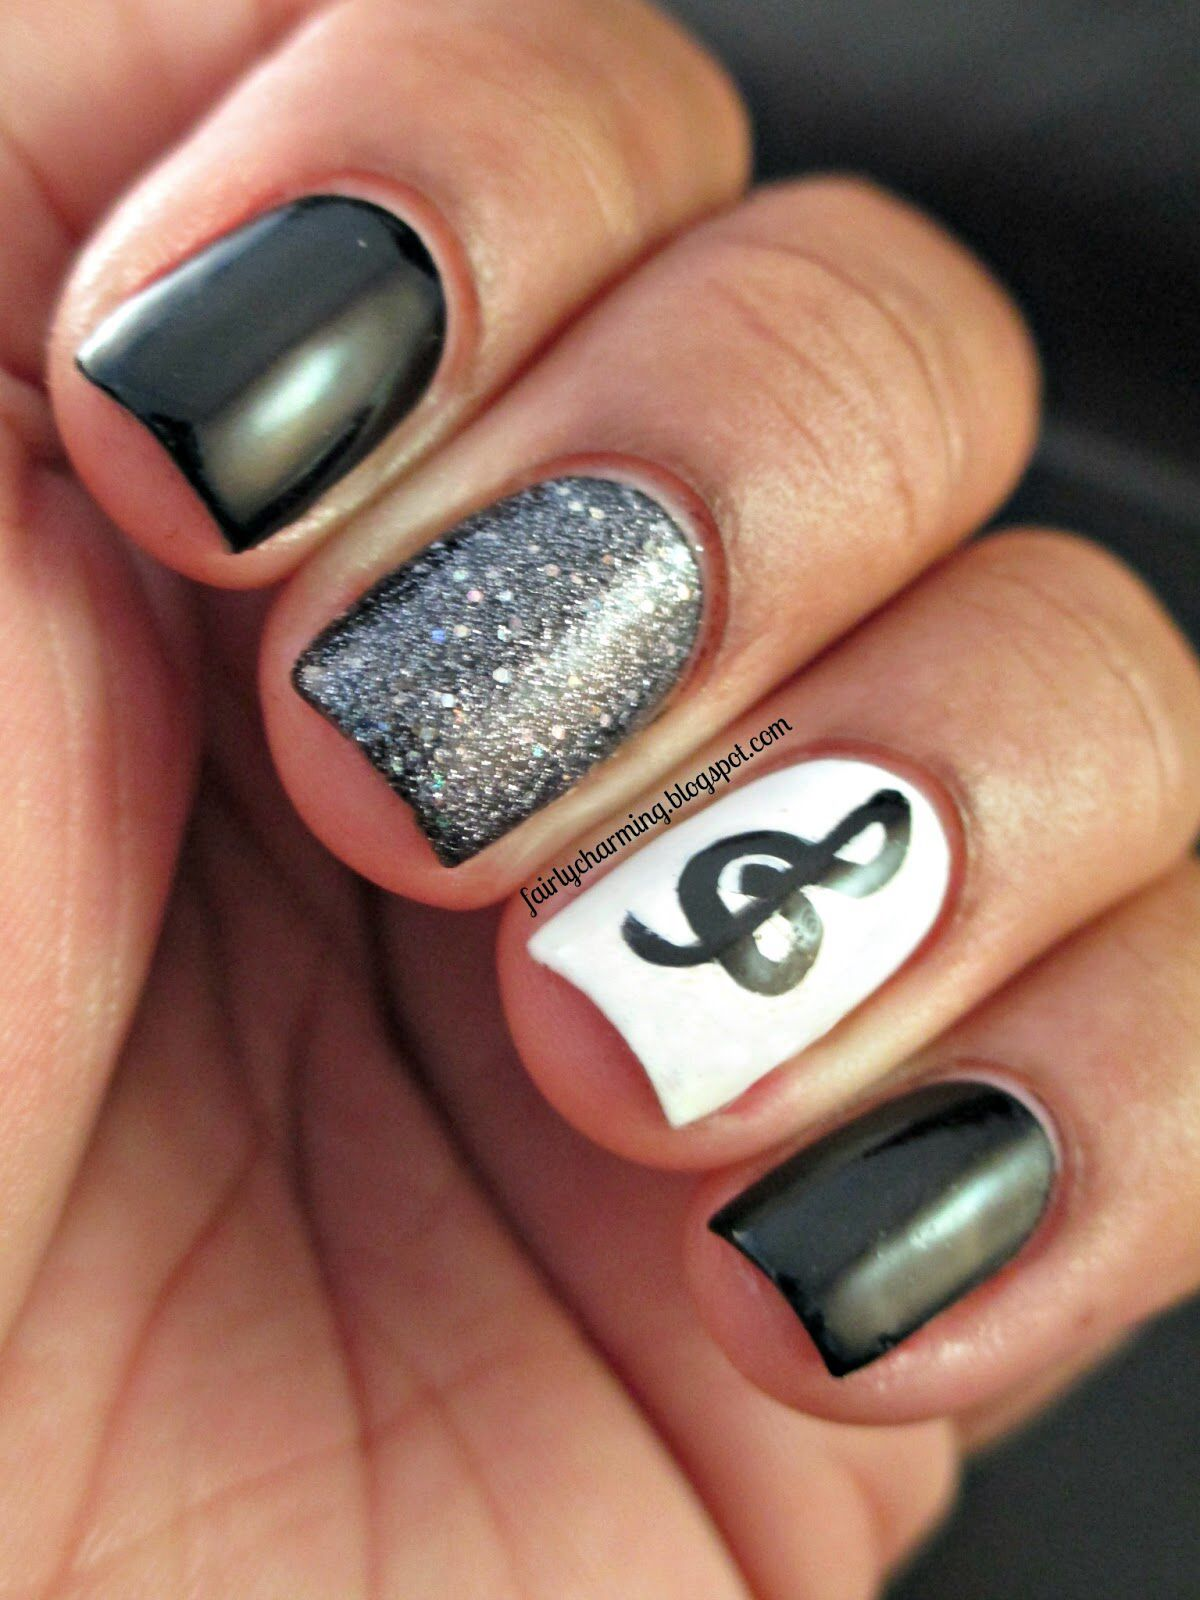 Nageldesign mit Notenschlüssel. Musical Nail Design. | Music Make up ...